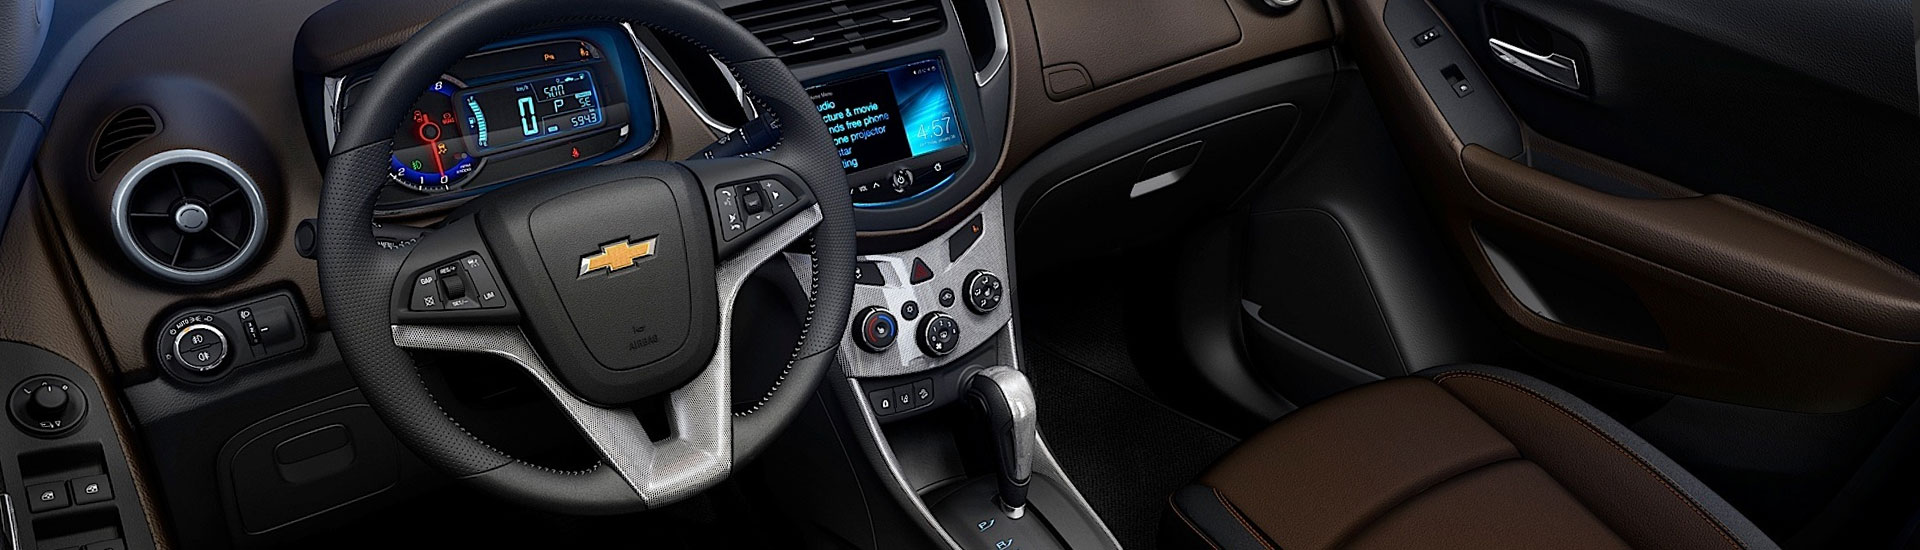 Chevrolet Trax Dash Kits